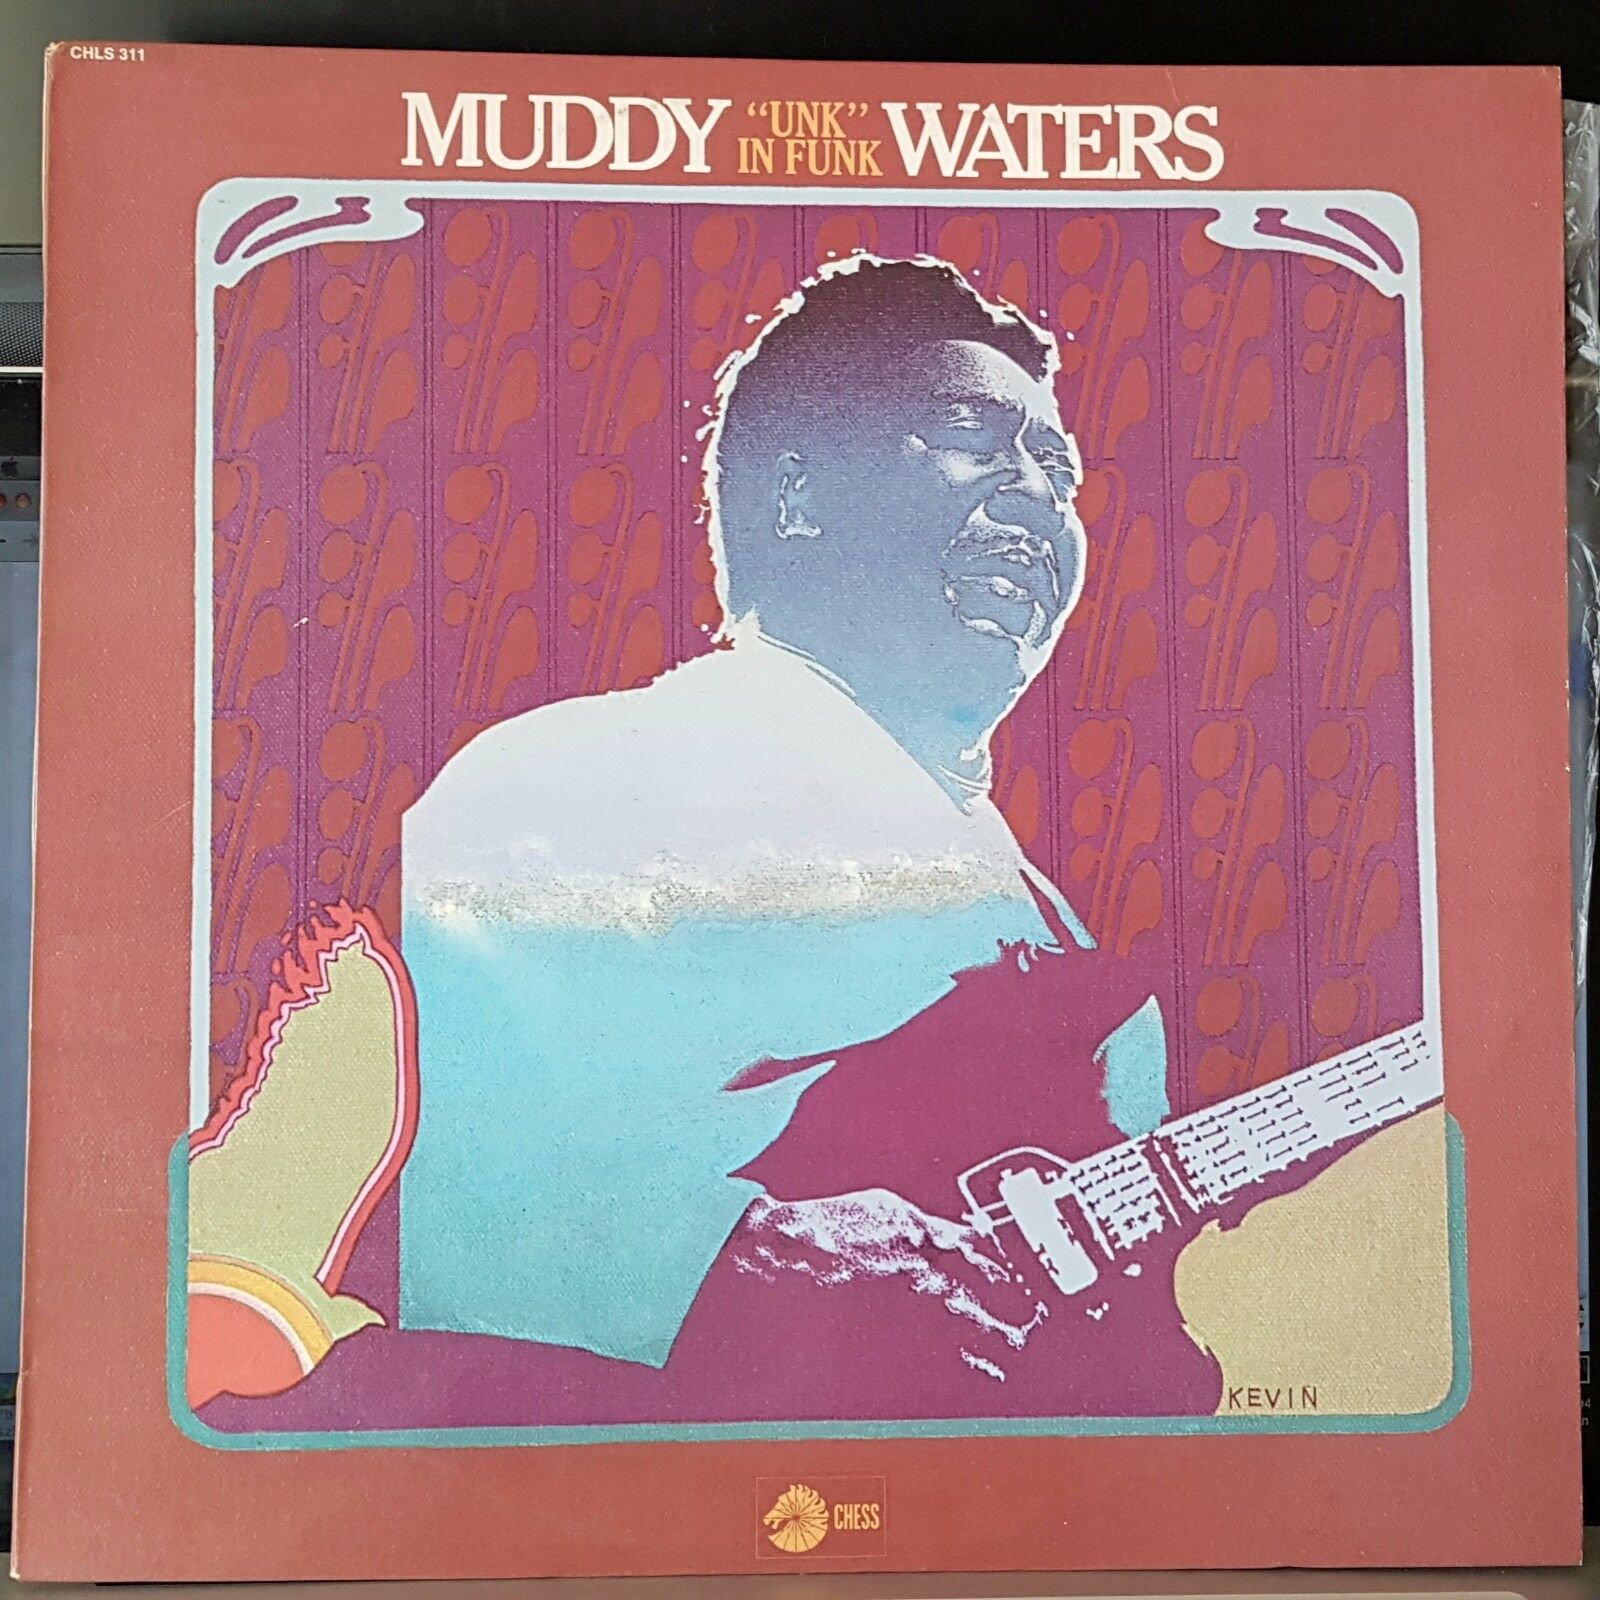 Muddy Waters - Unk In Funk - 1974 Chess blues LP record excellent